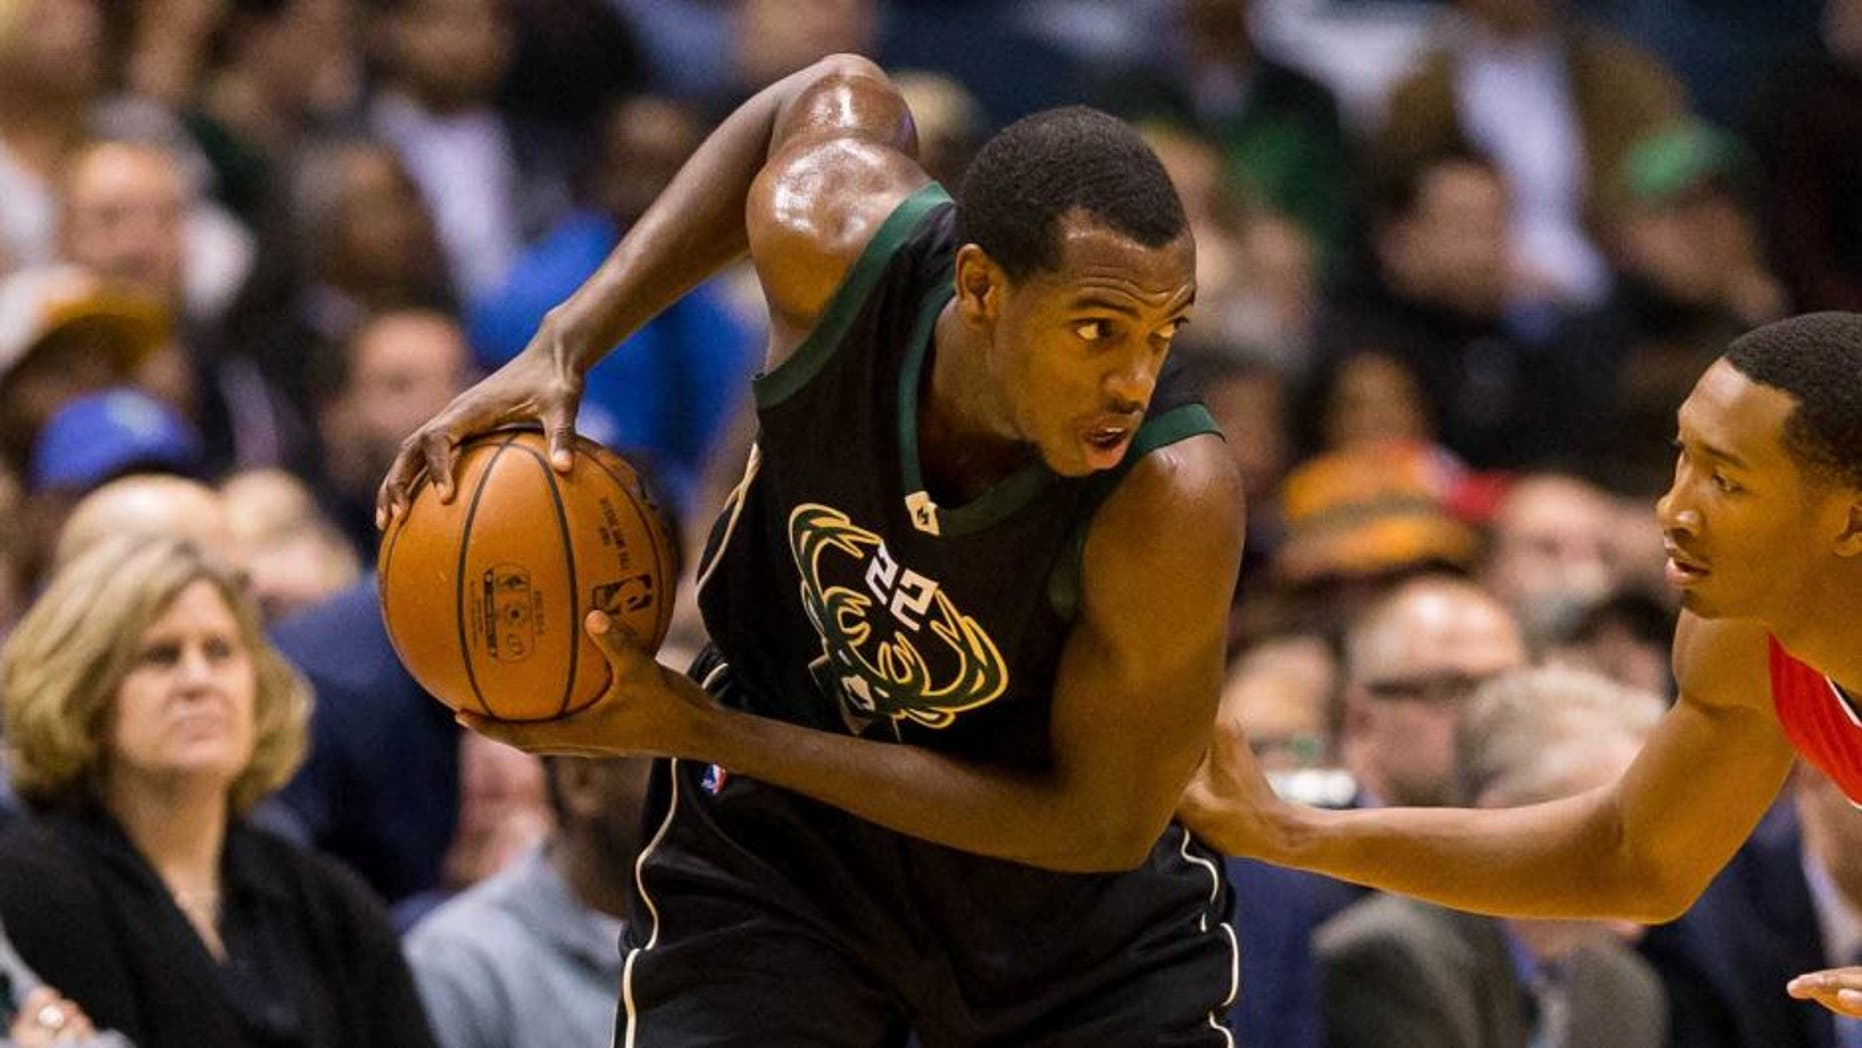 Wednesday, Dec. 9: Milwaukee Bucks guard Khris Middleton looks to pass during the game against the Los Angeles Clippers at BMO Harris Bradley Center.